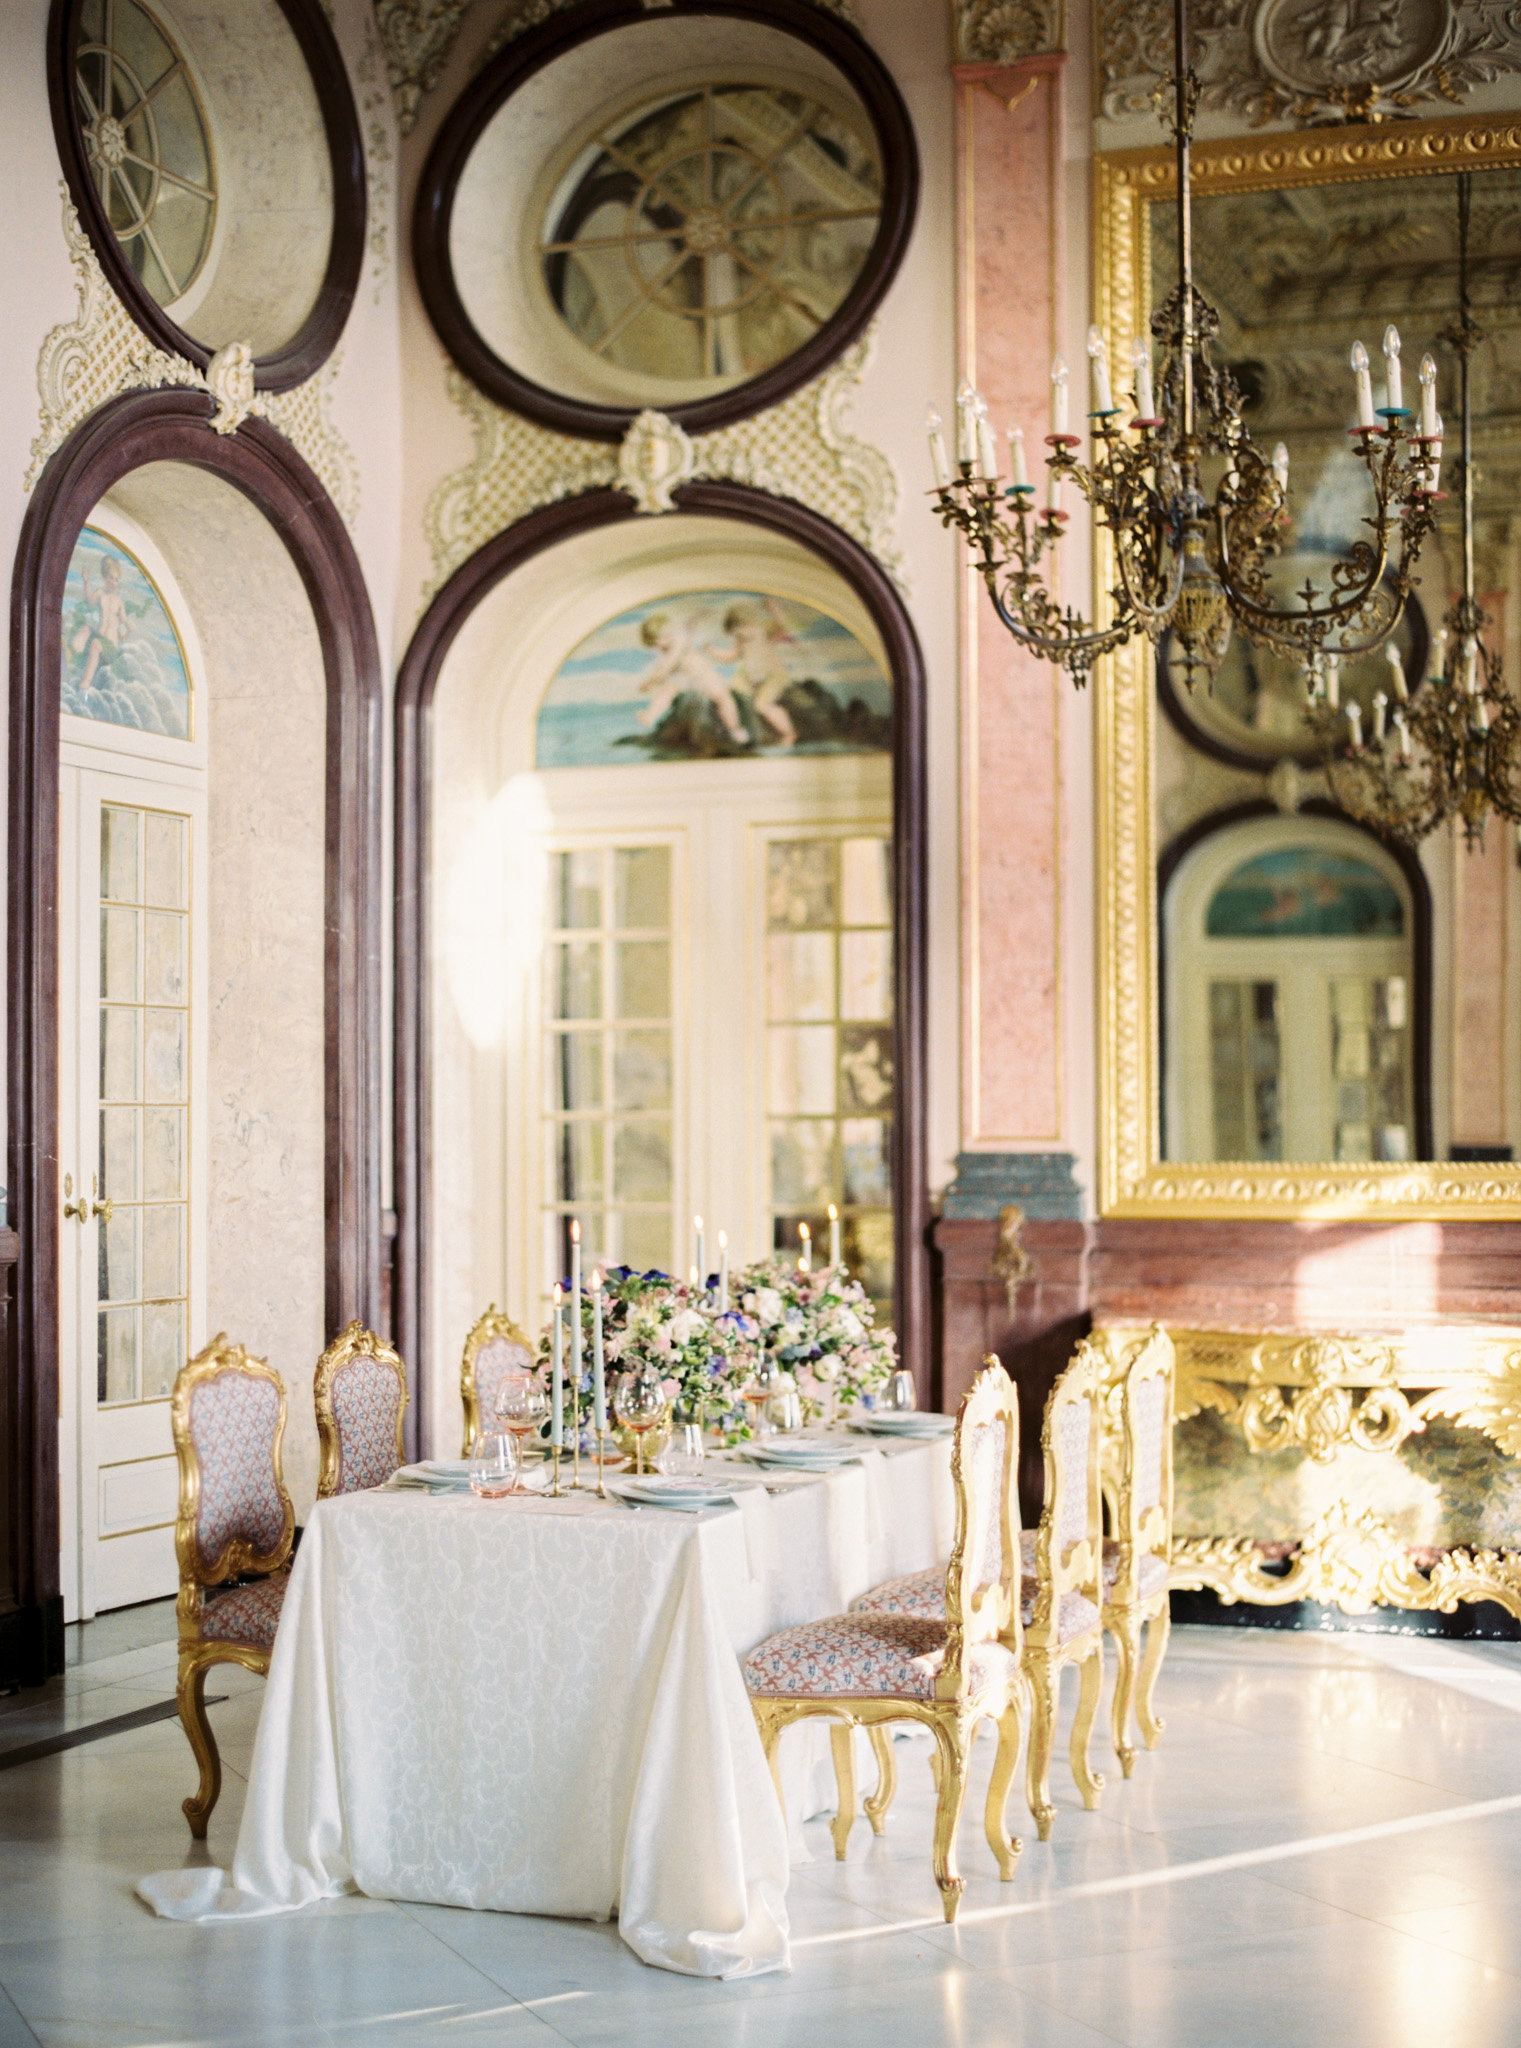 Destination wedding venue in Portugal, Estoi Palace in the south of Portugal which is perfect for a small luxury wedding